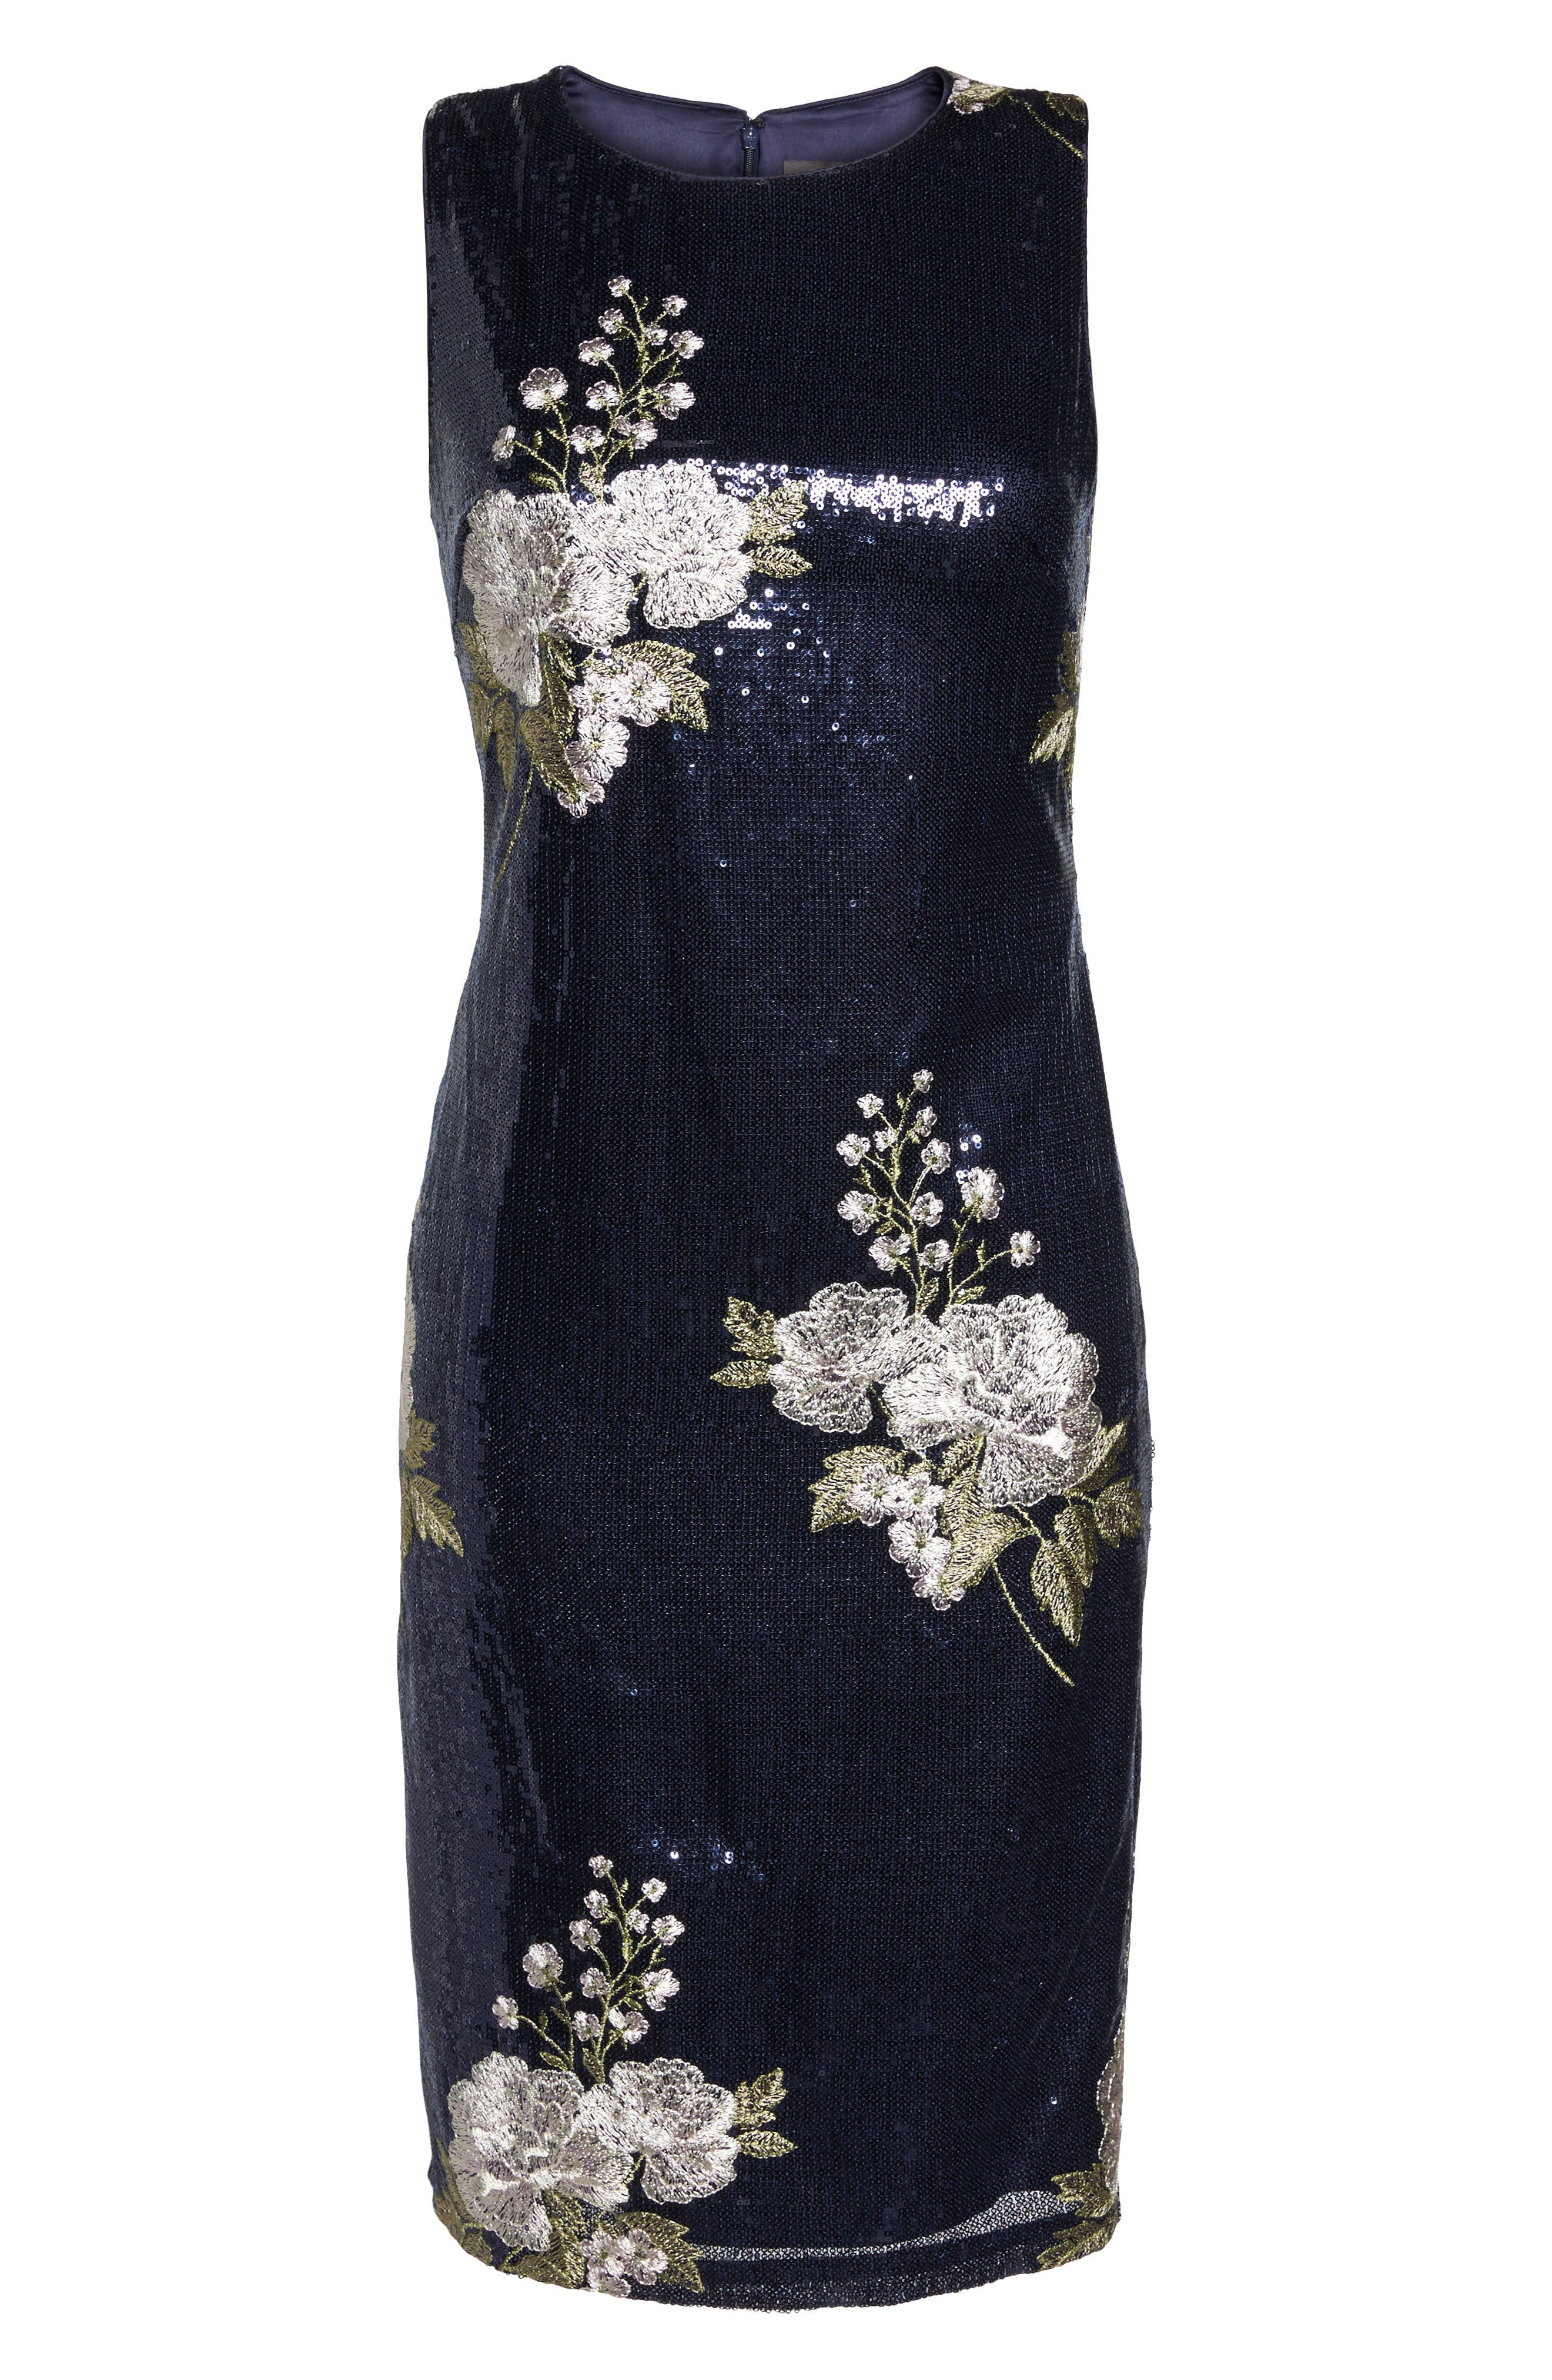 Sequin & Embroidery Sheath Dress,                             Alternate thumbnail 6, color,                             Navy